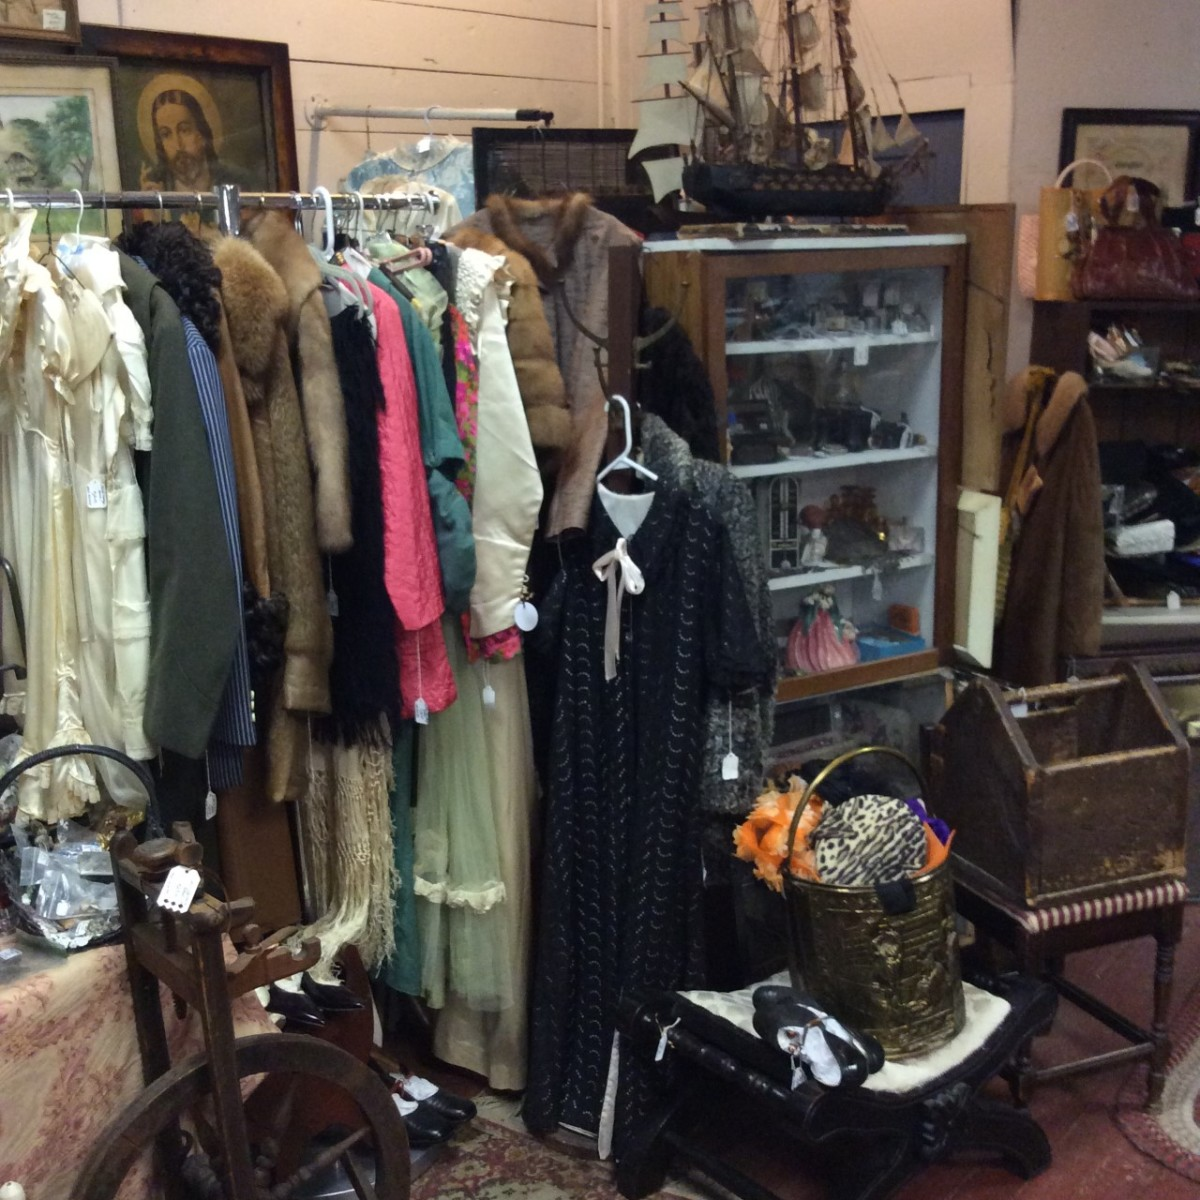 Pictured above and below is some of the antique and vintage clothing,  and many other items, in Mullikin's shop.